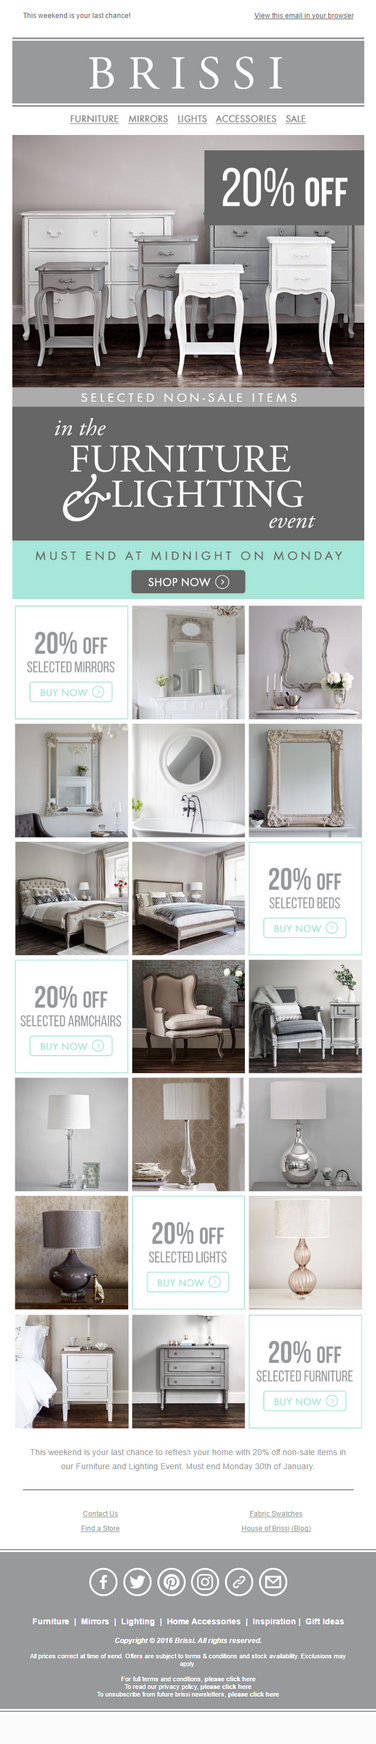 Brissi - 20% Off Furniture